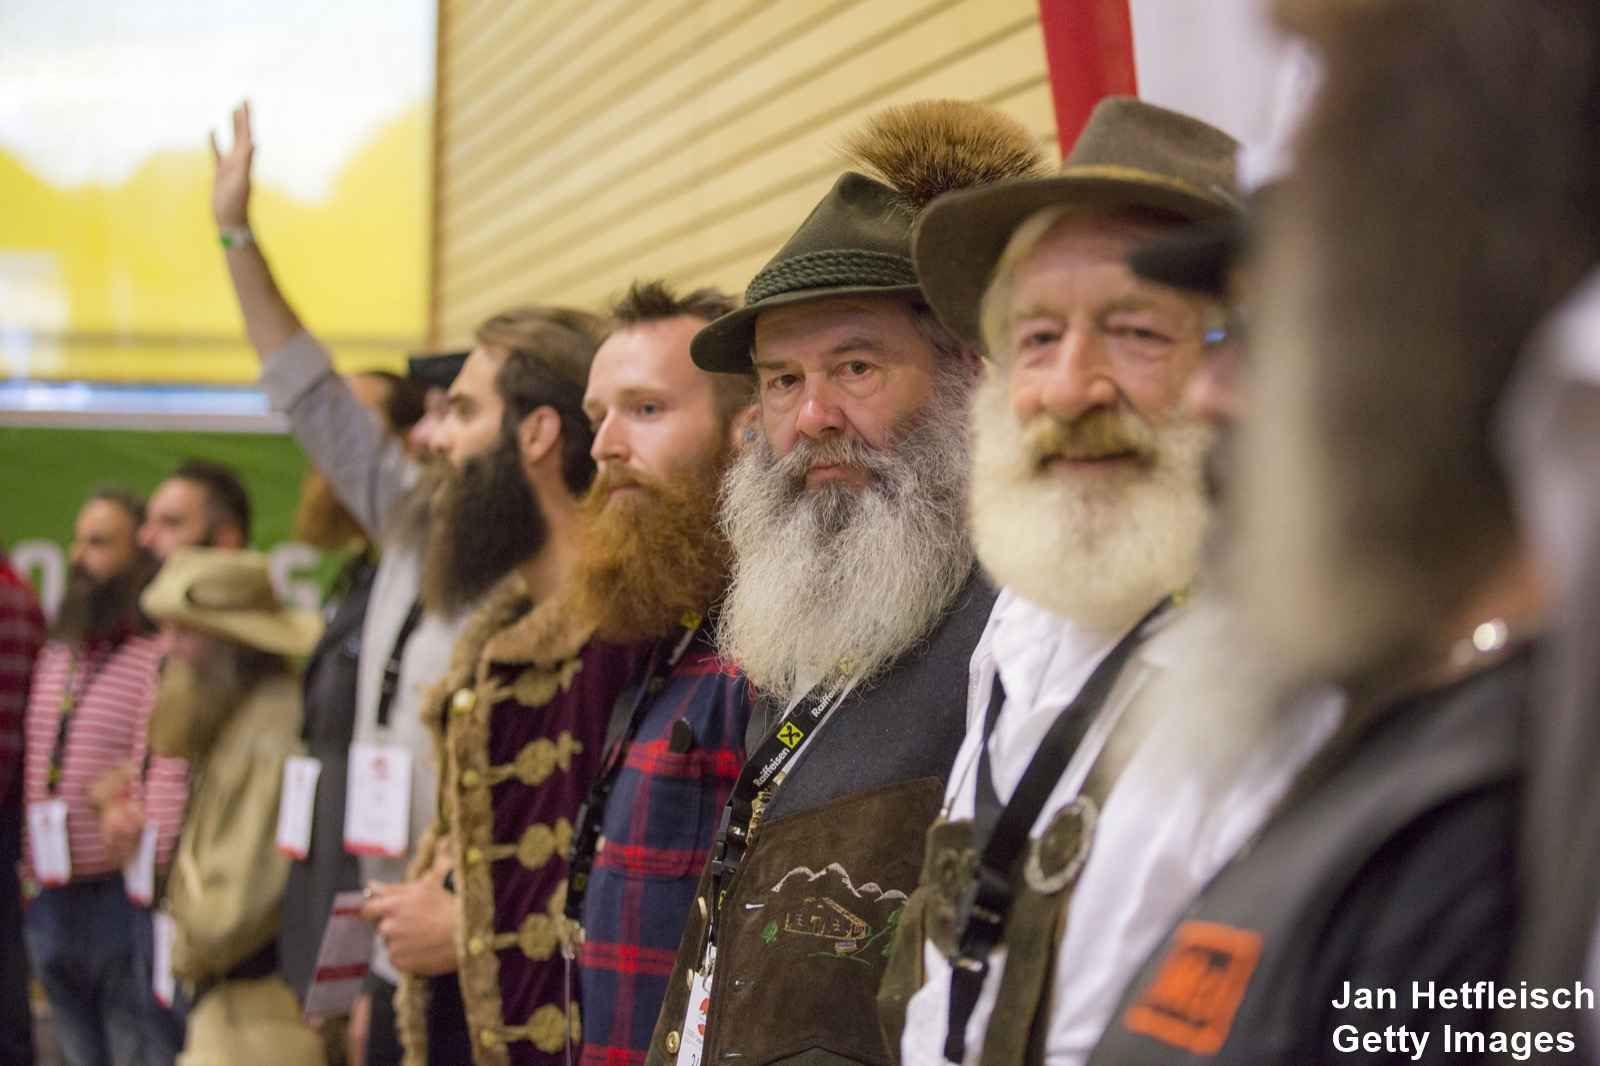 LEOGANG, AUSTRIA - OCTOBER 3: Contestants line up for judging in the 'Mustache Naturale' category at the 2015 World Beard And Mustache Championships on October 3, 2015 in Leogang, Austria. Over 300 contestants in teams from across the globe have come to compete in sixteen different categories in three groups: mustache, partial beard and full beard. The event takes place every few years at different locations worldwide. (Photo by Jan Hetfleisch/Getty Images)